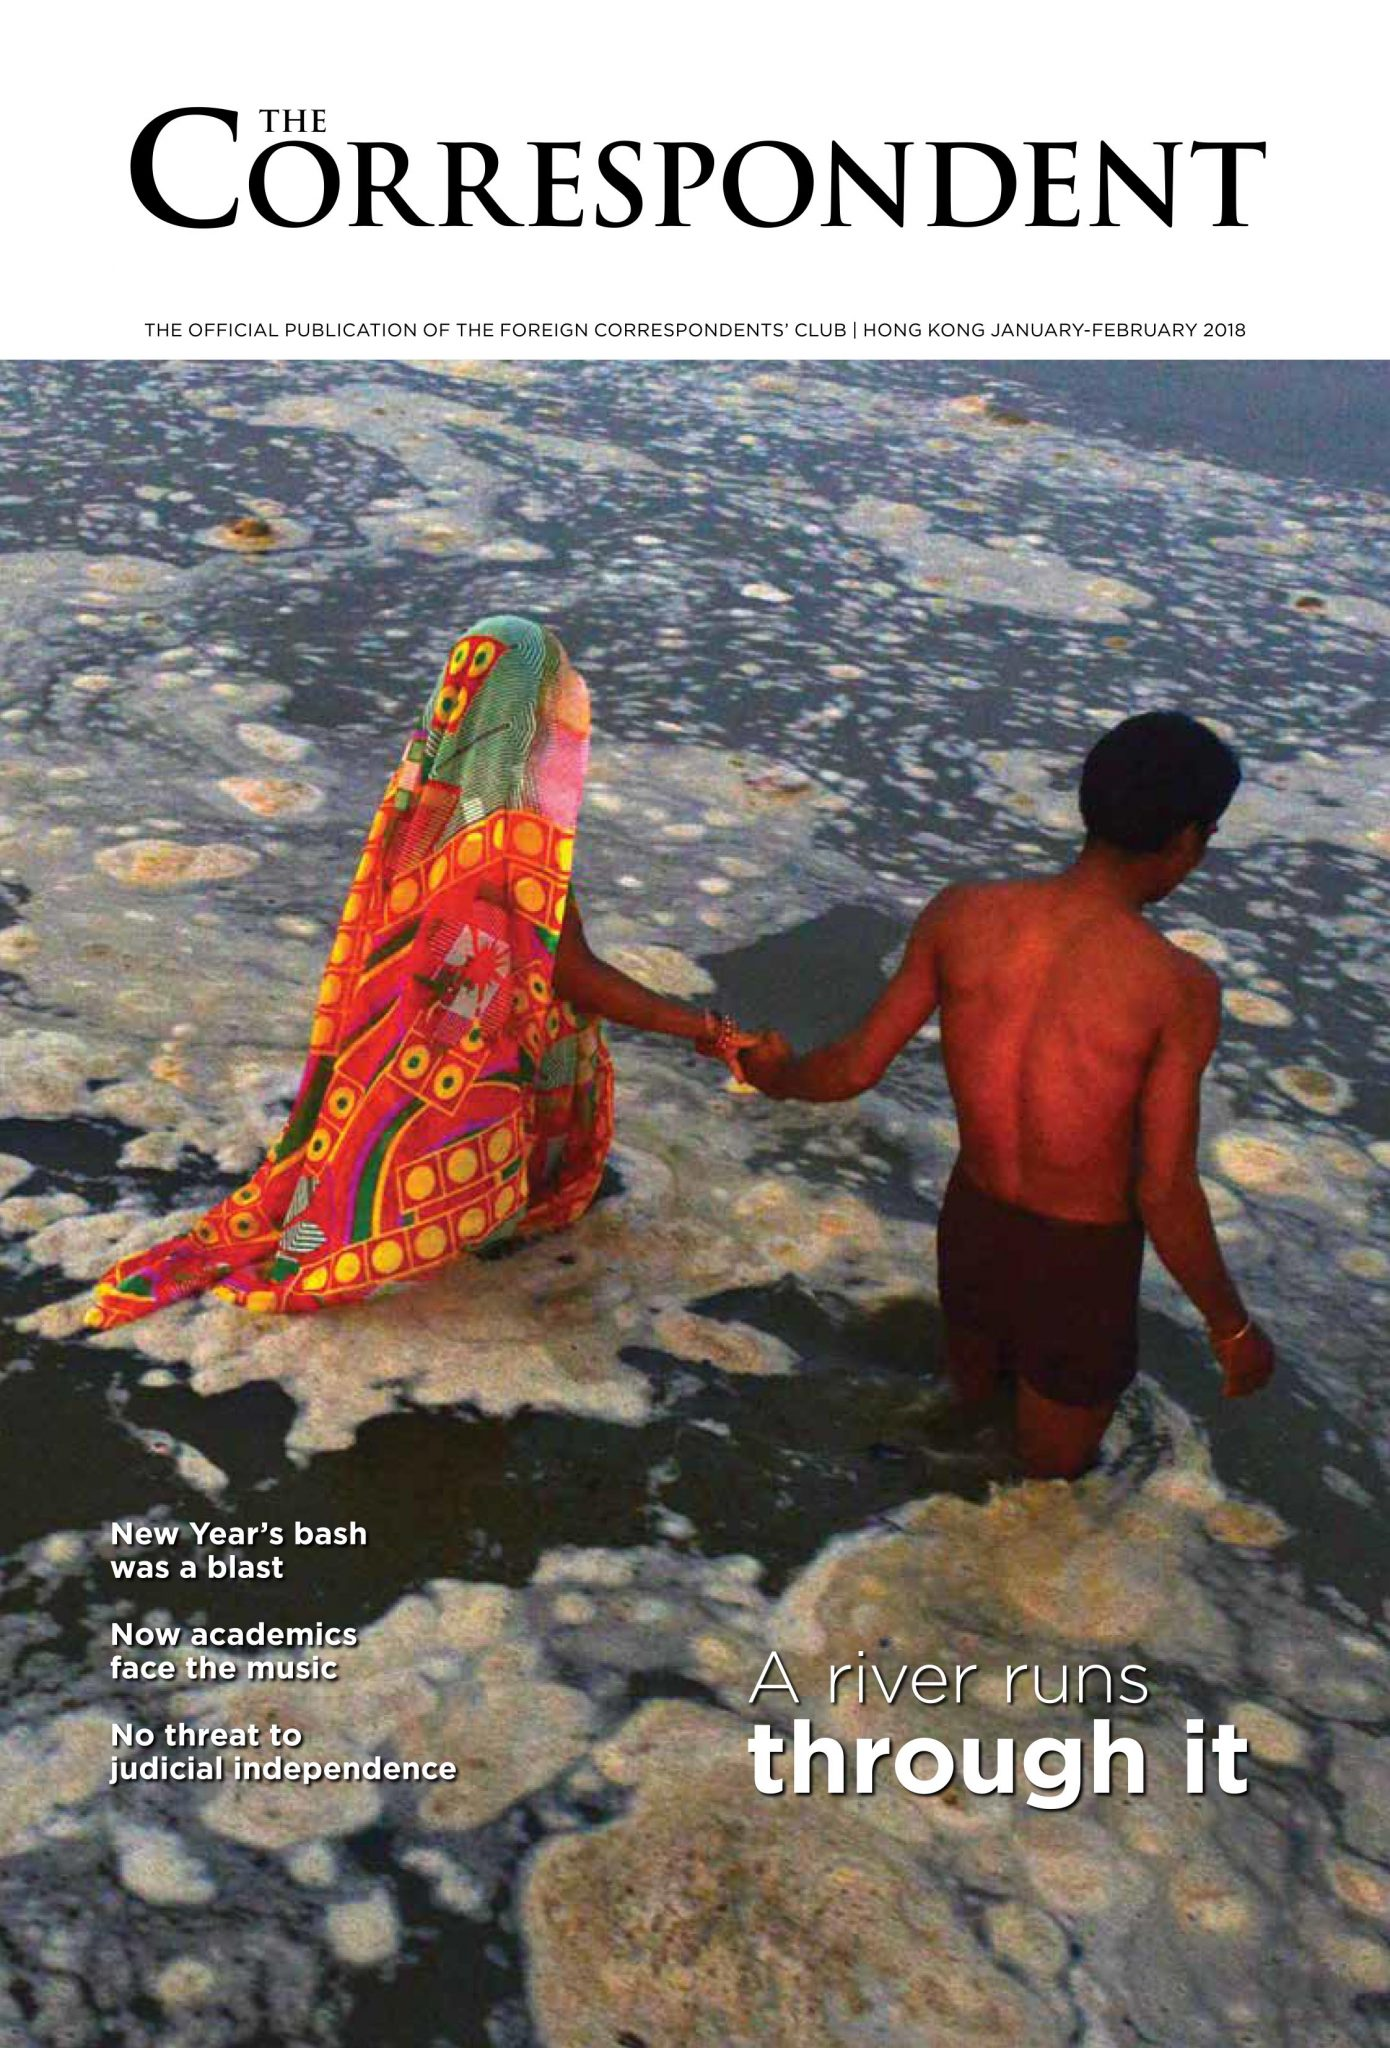 River of Life, River of Death: The Ganges and India's Future, by Victor Mallet